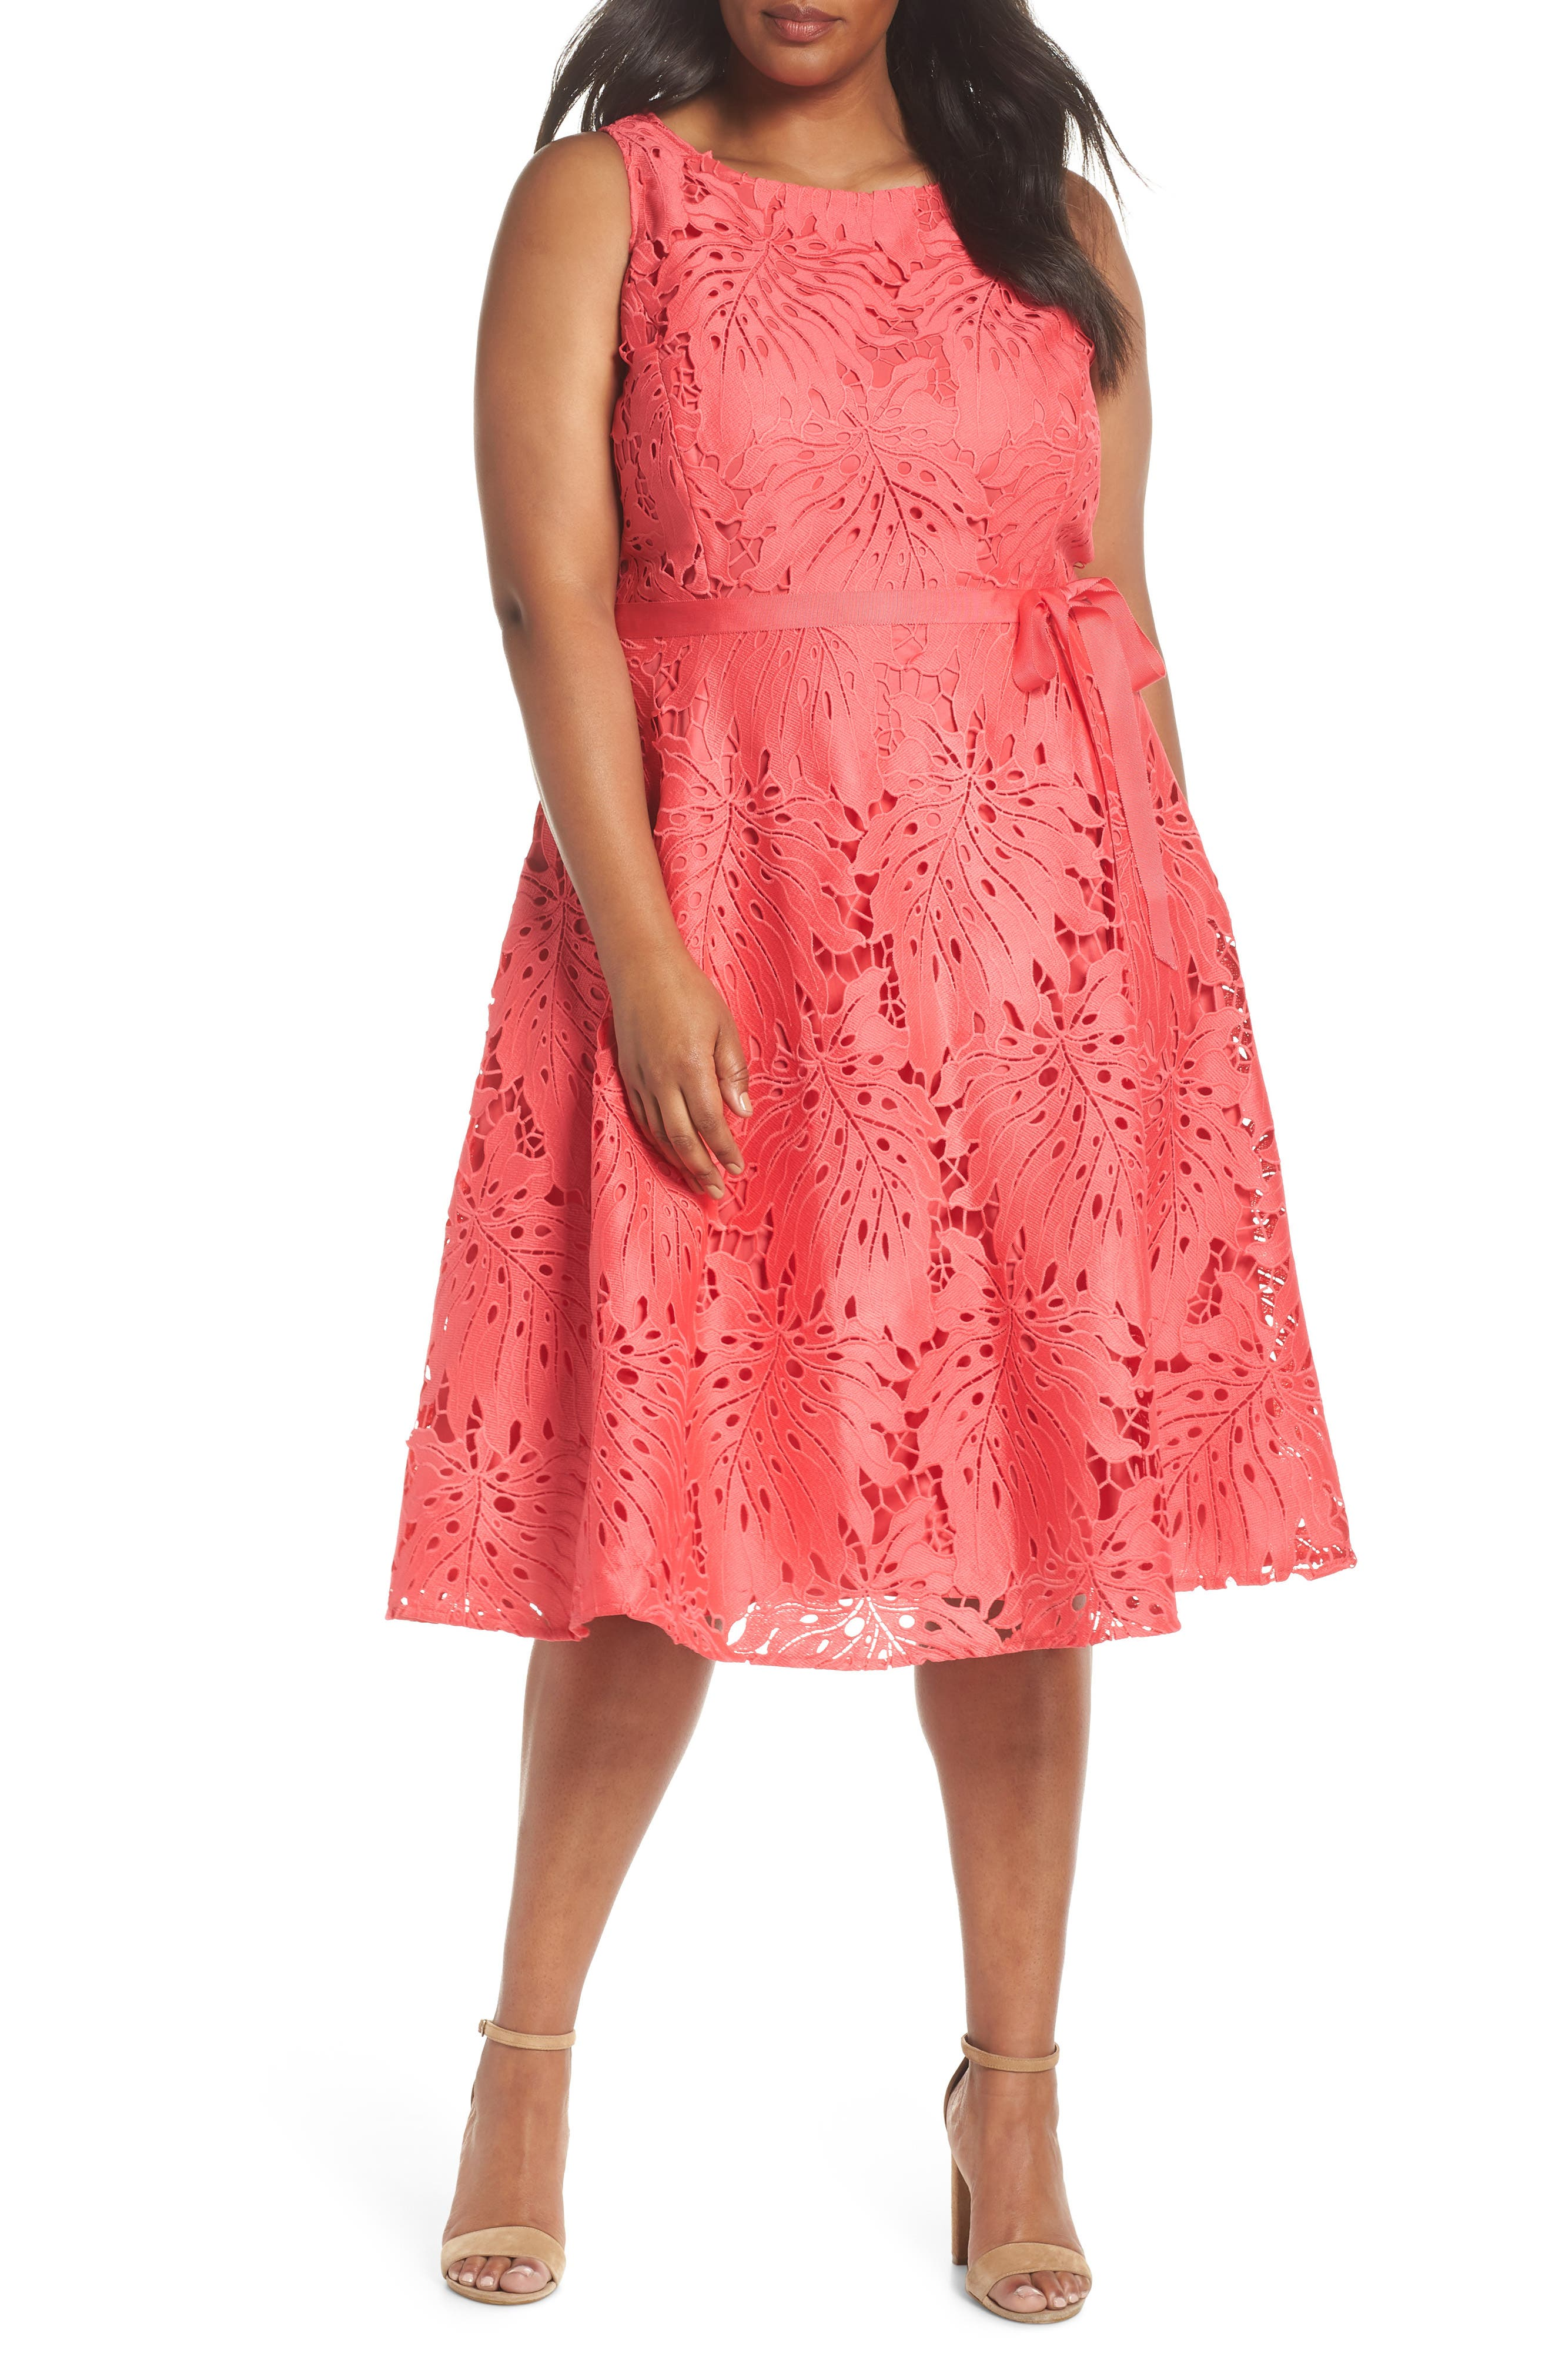 Tahari Palm Leaf Chemical Lace A-Line Dress (Plus Size)